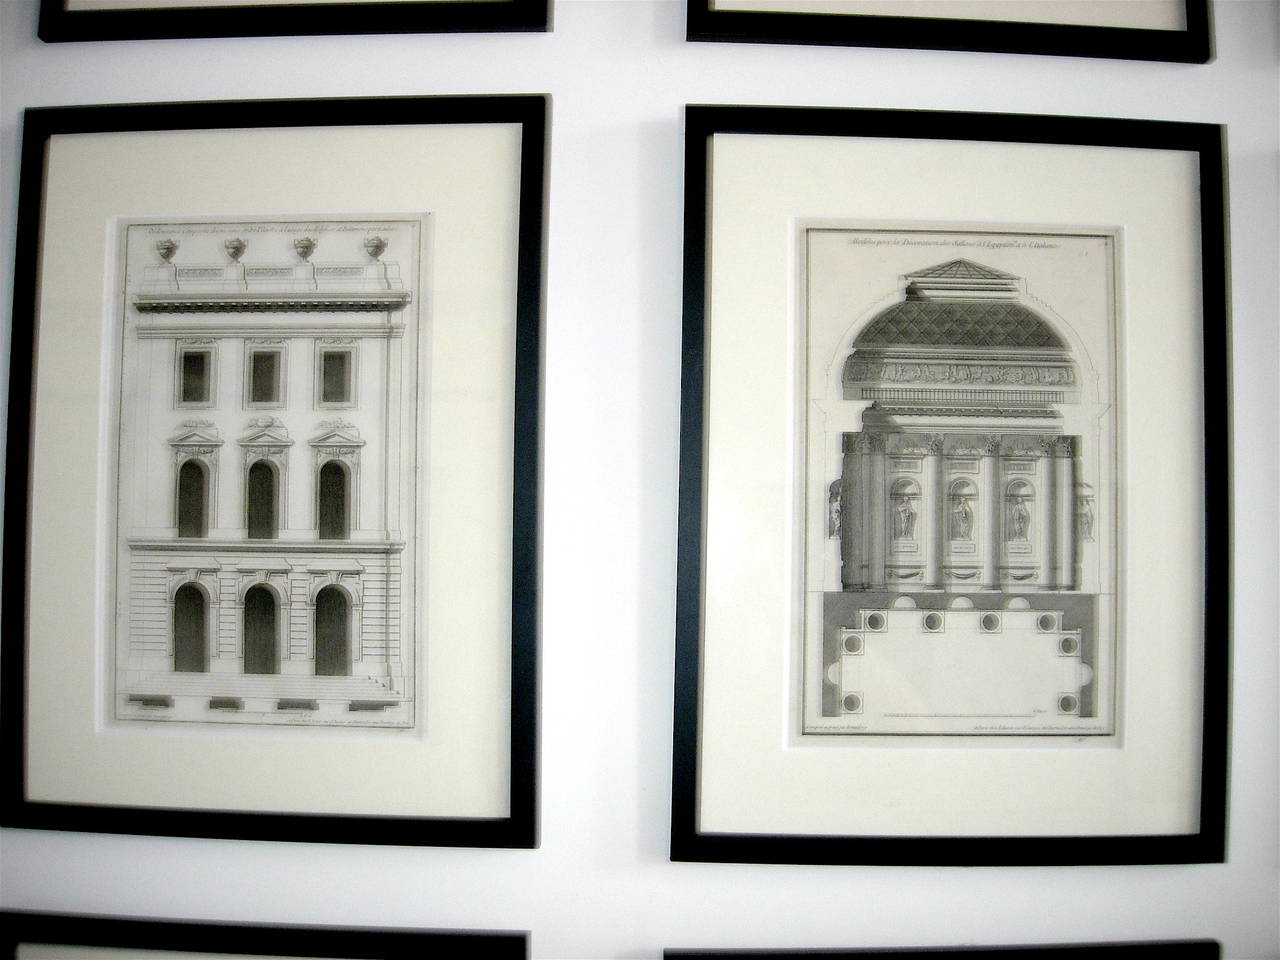 Paper Extensive Collection of 18th Century Architectural Engravings, Priced Per Piece. For Sale